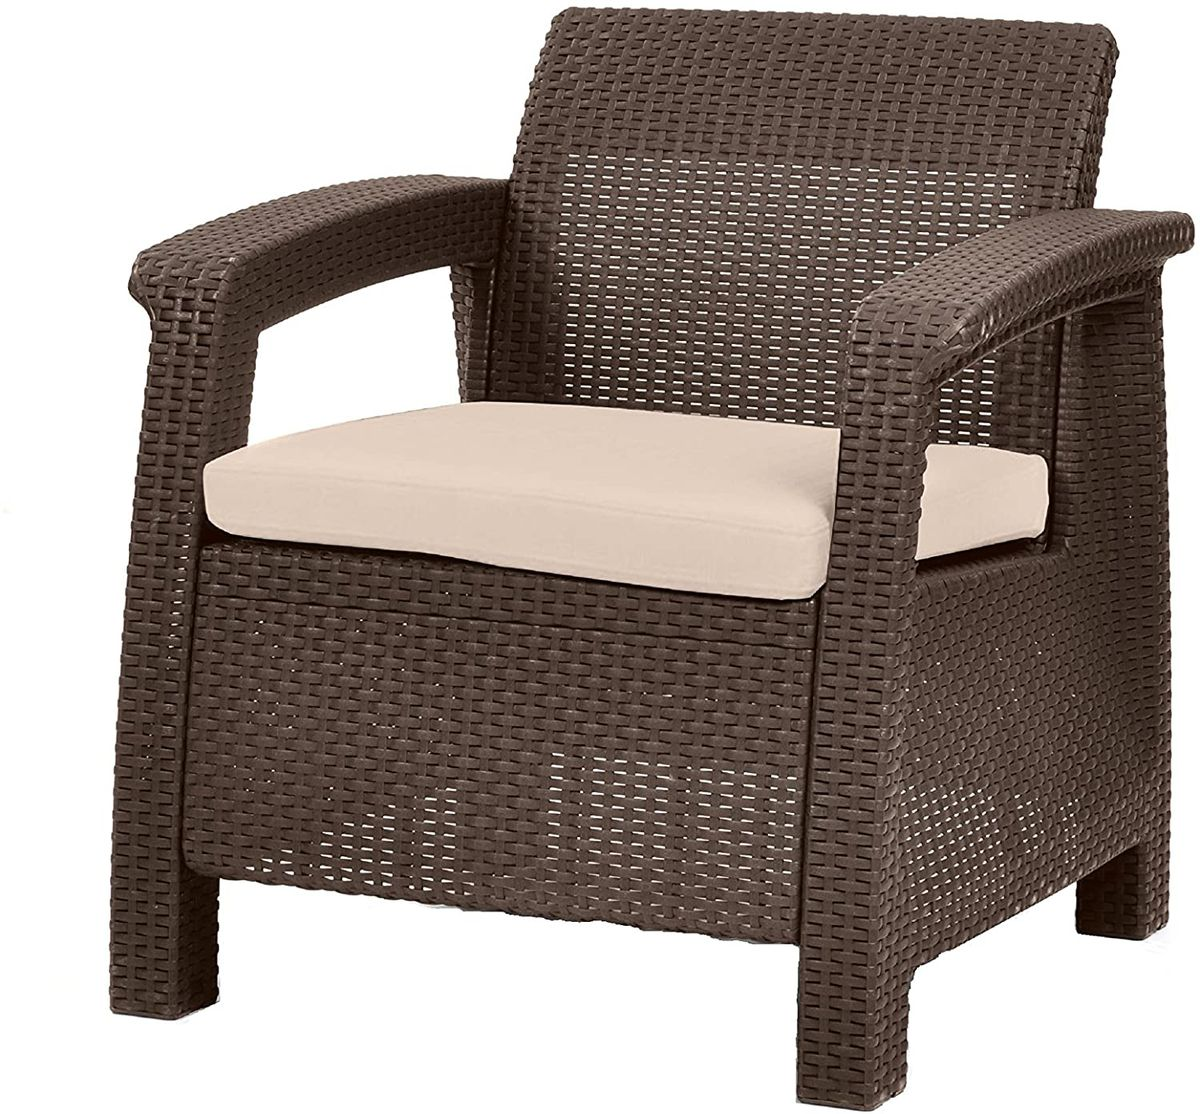 Brown woven chair.